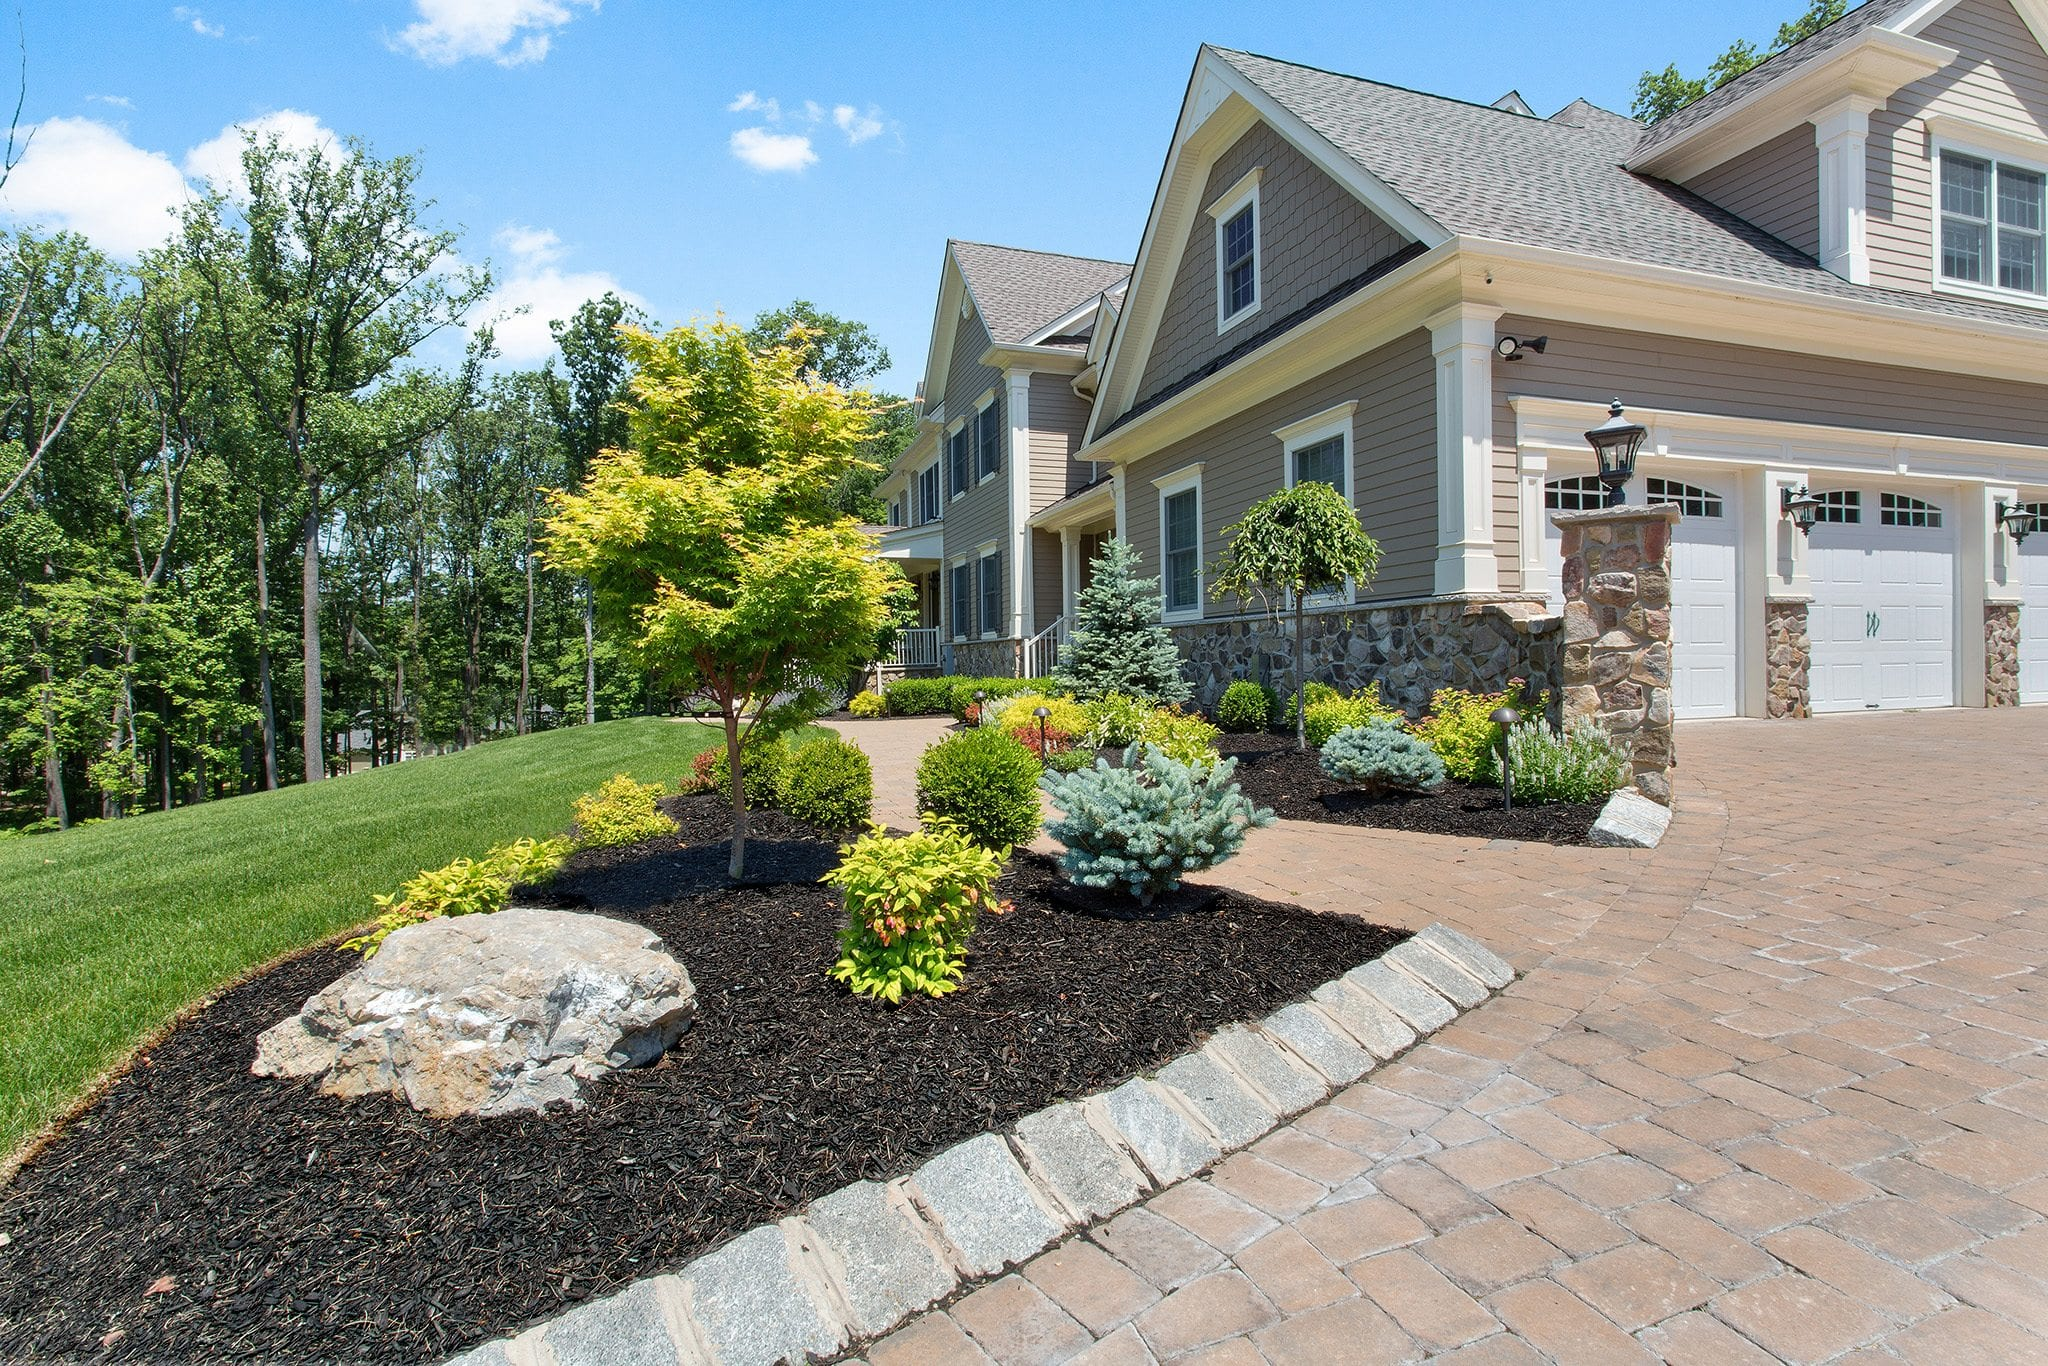 5 Unique Front Yard Landscape Ideas for Your Somerset County Home